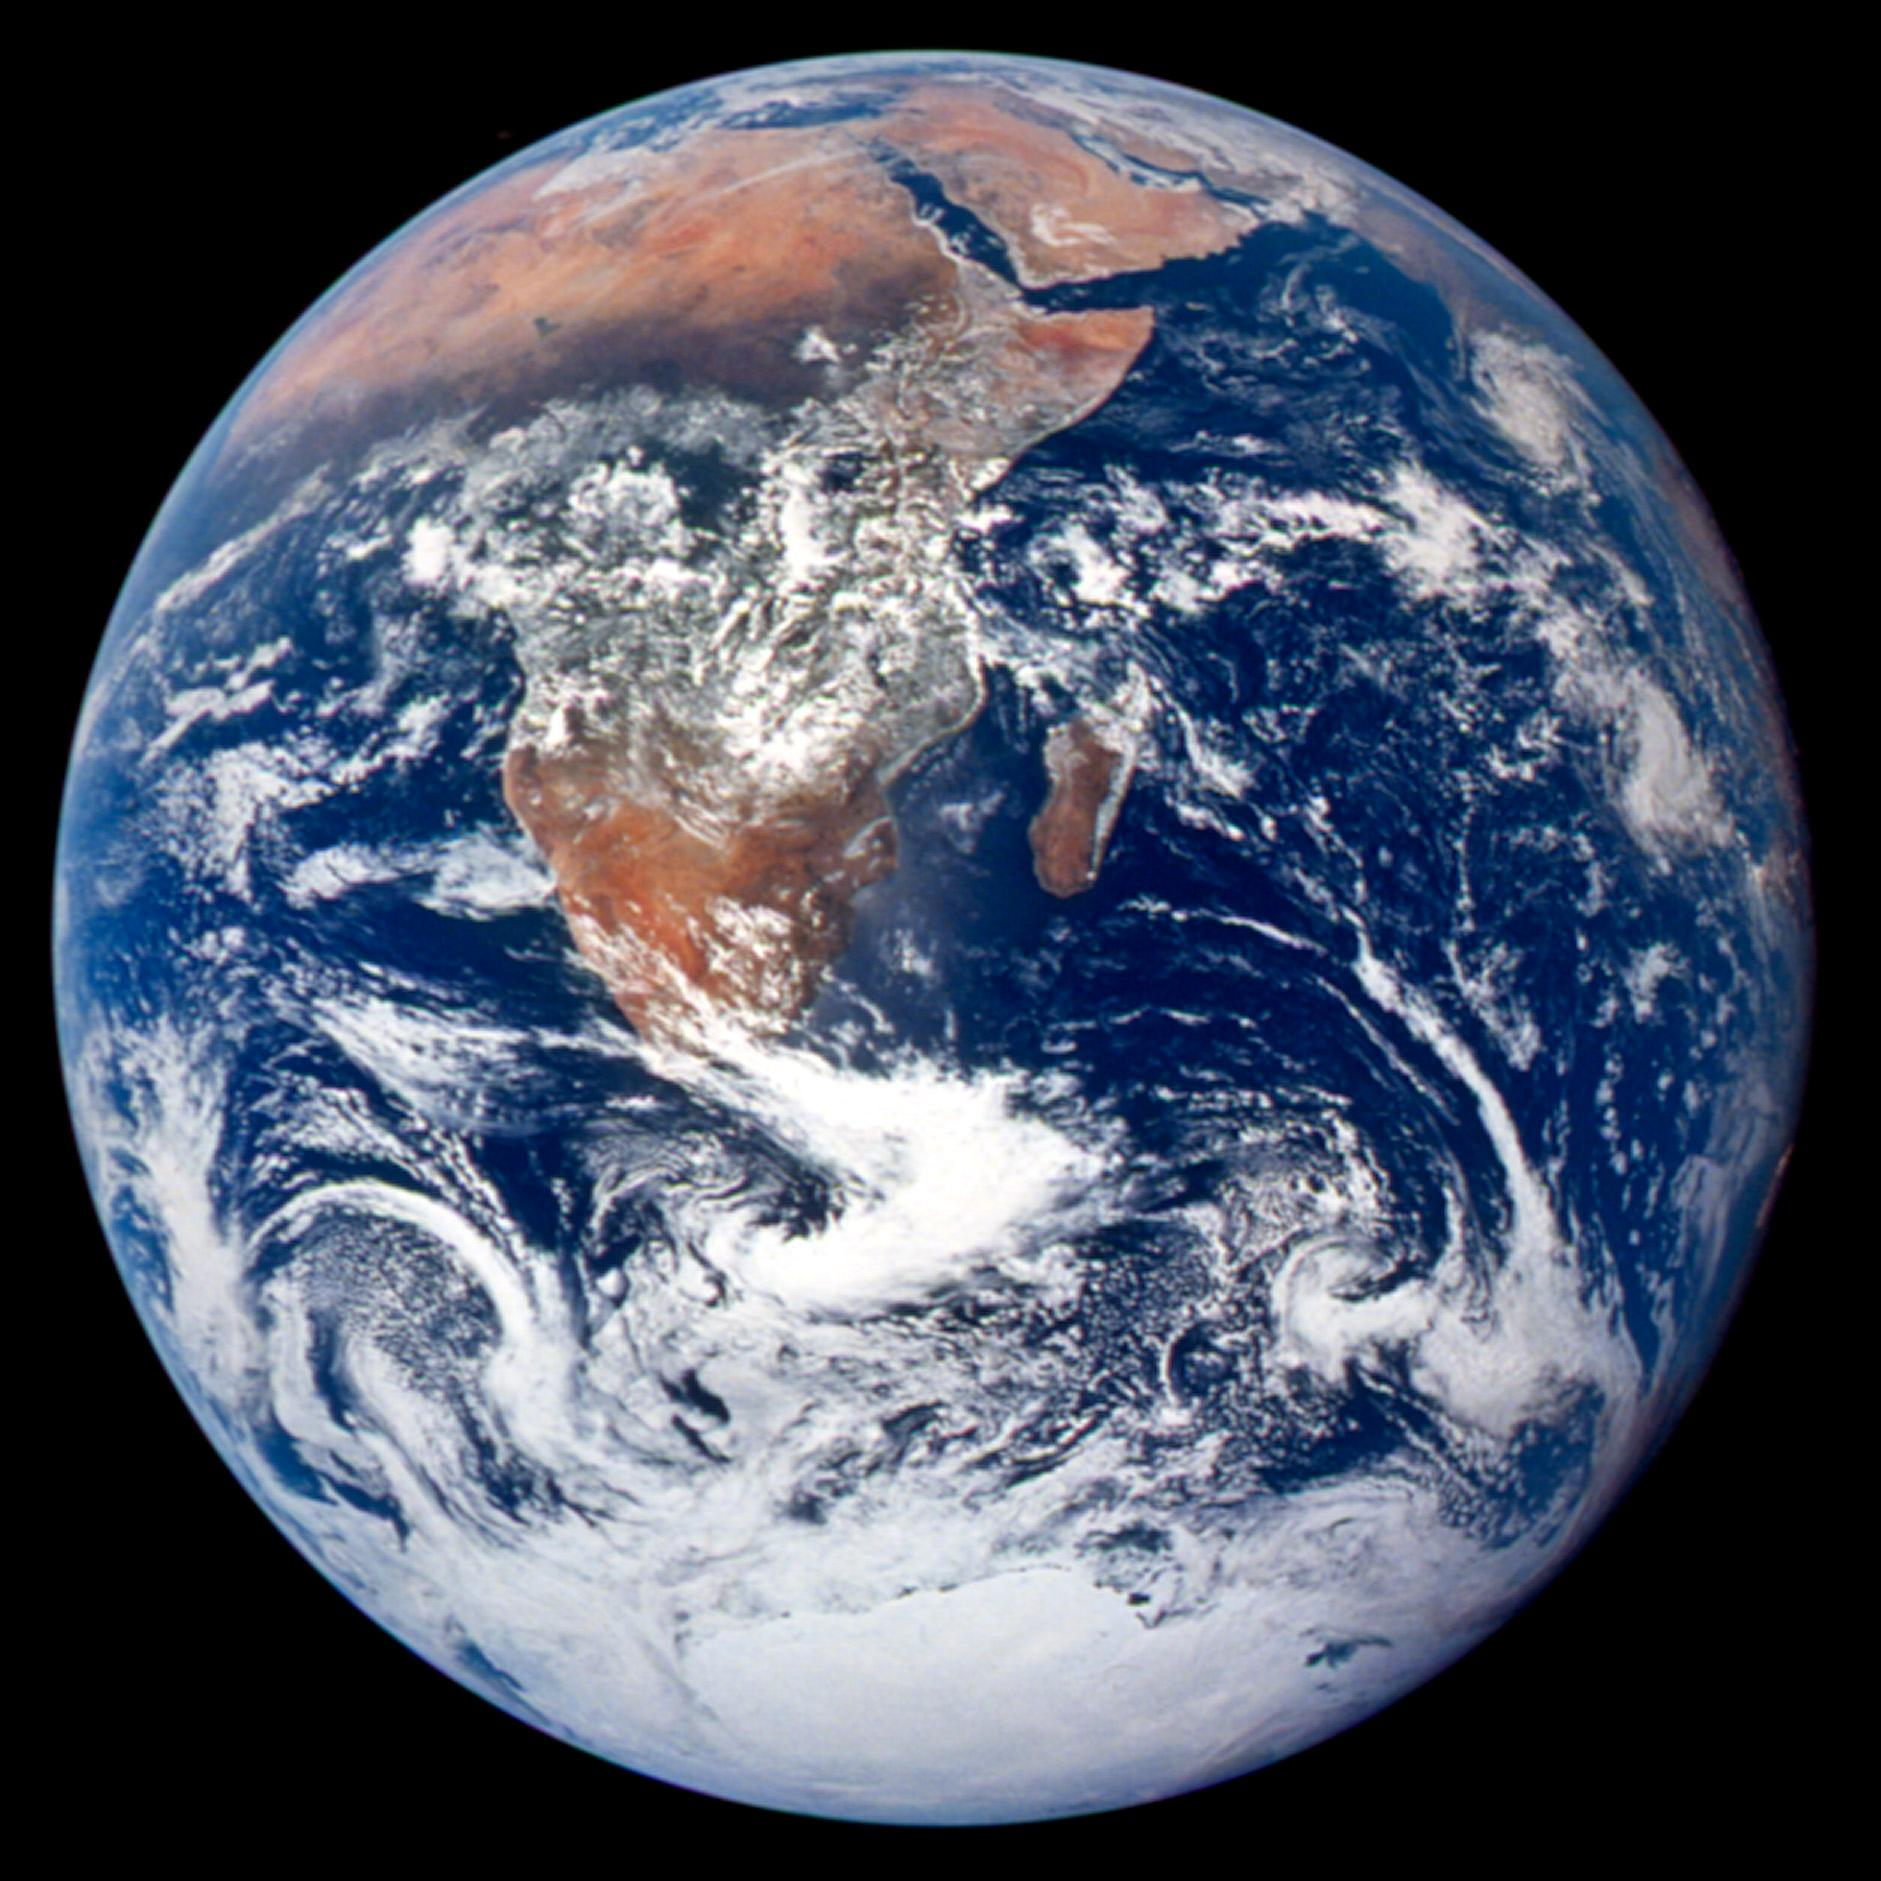 https://i1.wp.com/hypescience.com/wp-content/uploads/2015/12/foto-terra-nasa-blue-marble.jpg